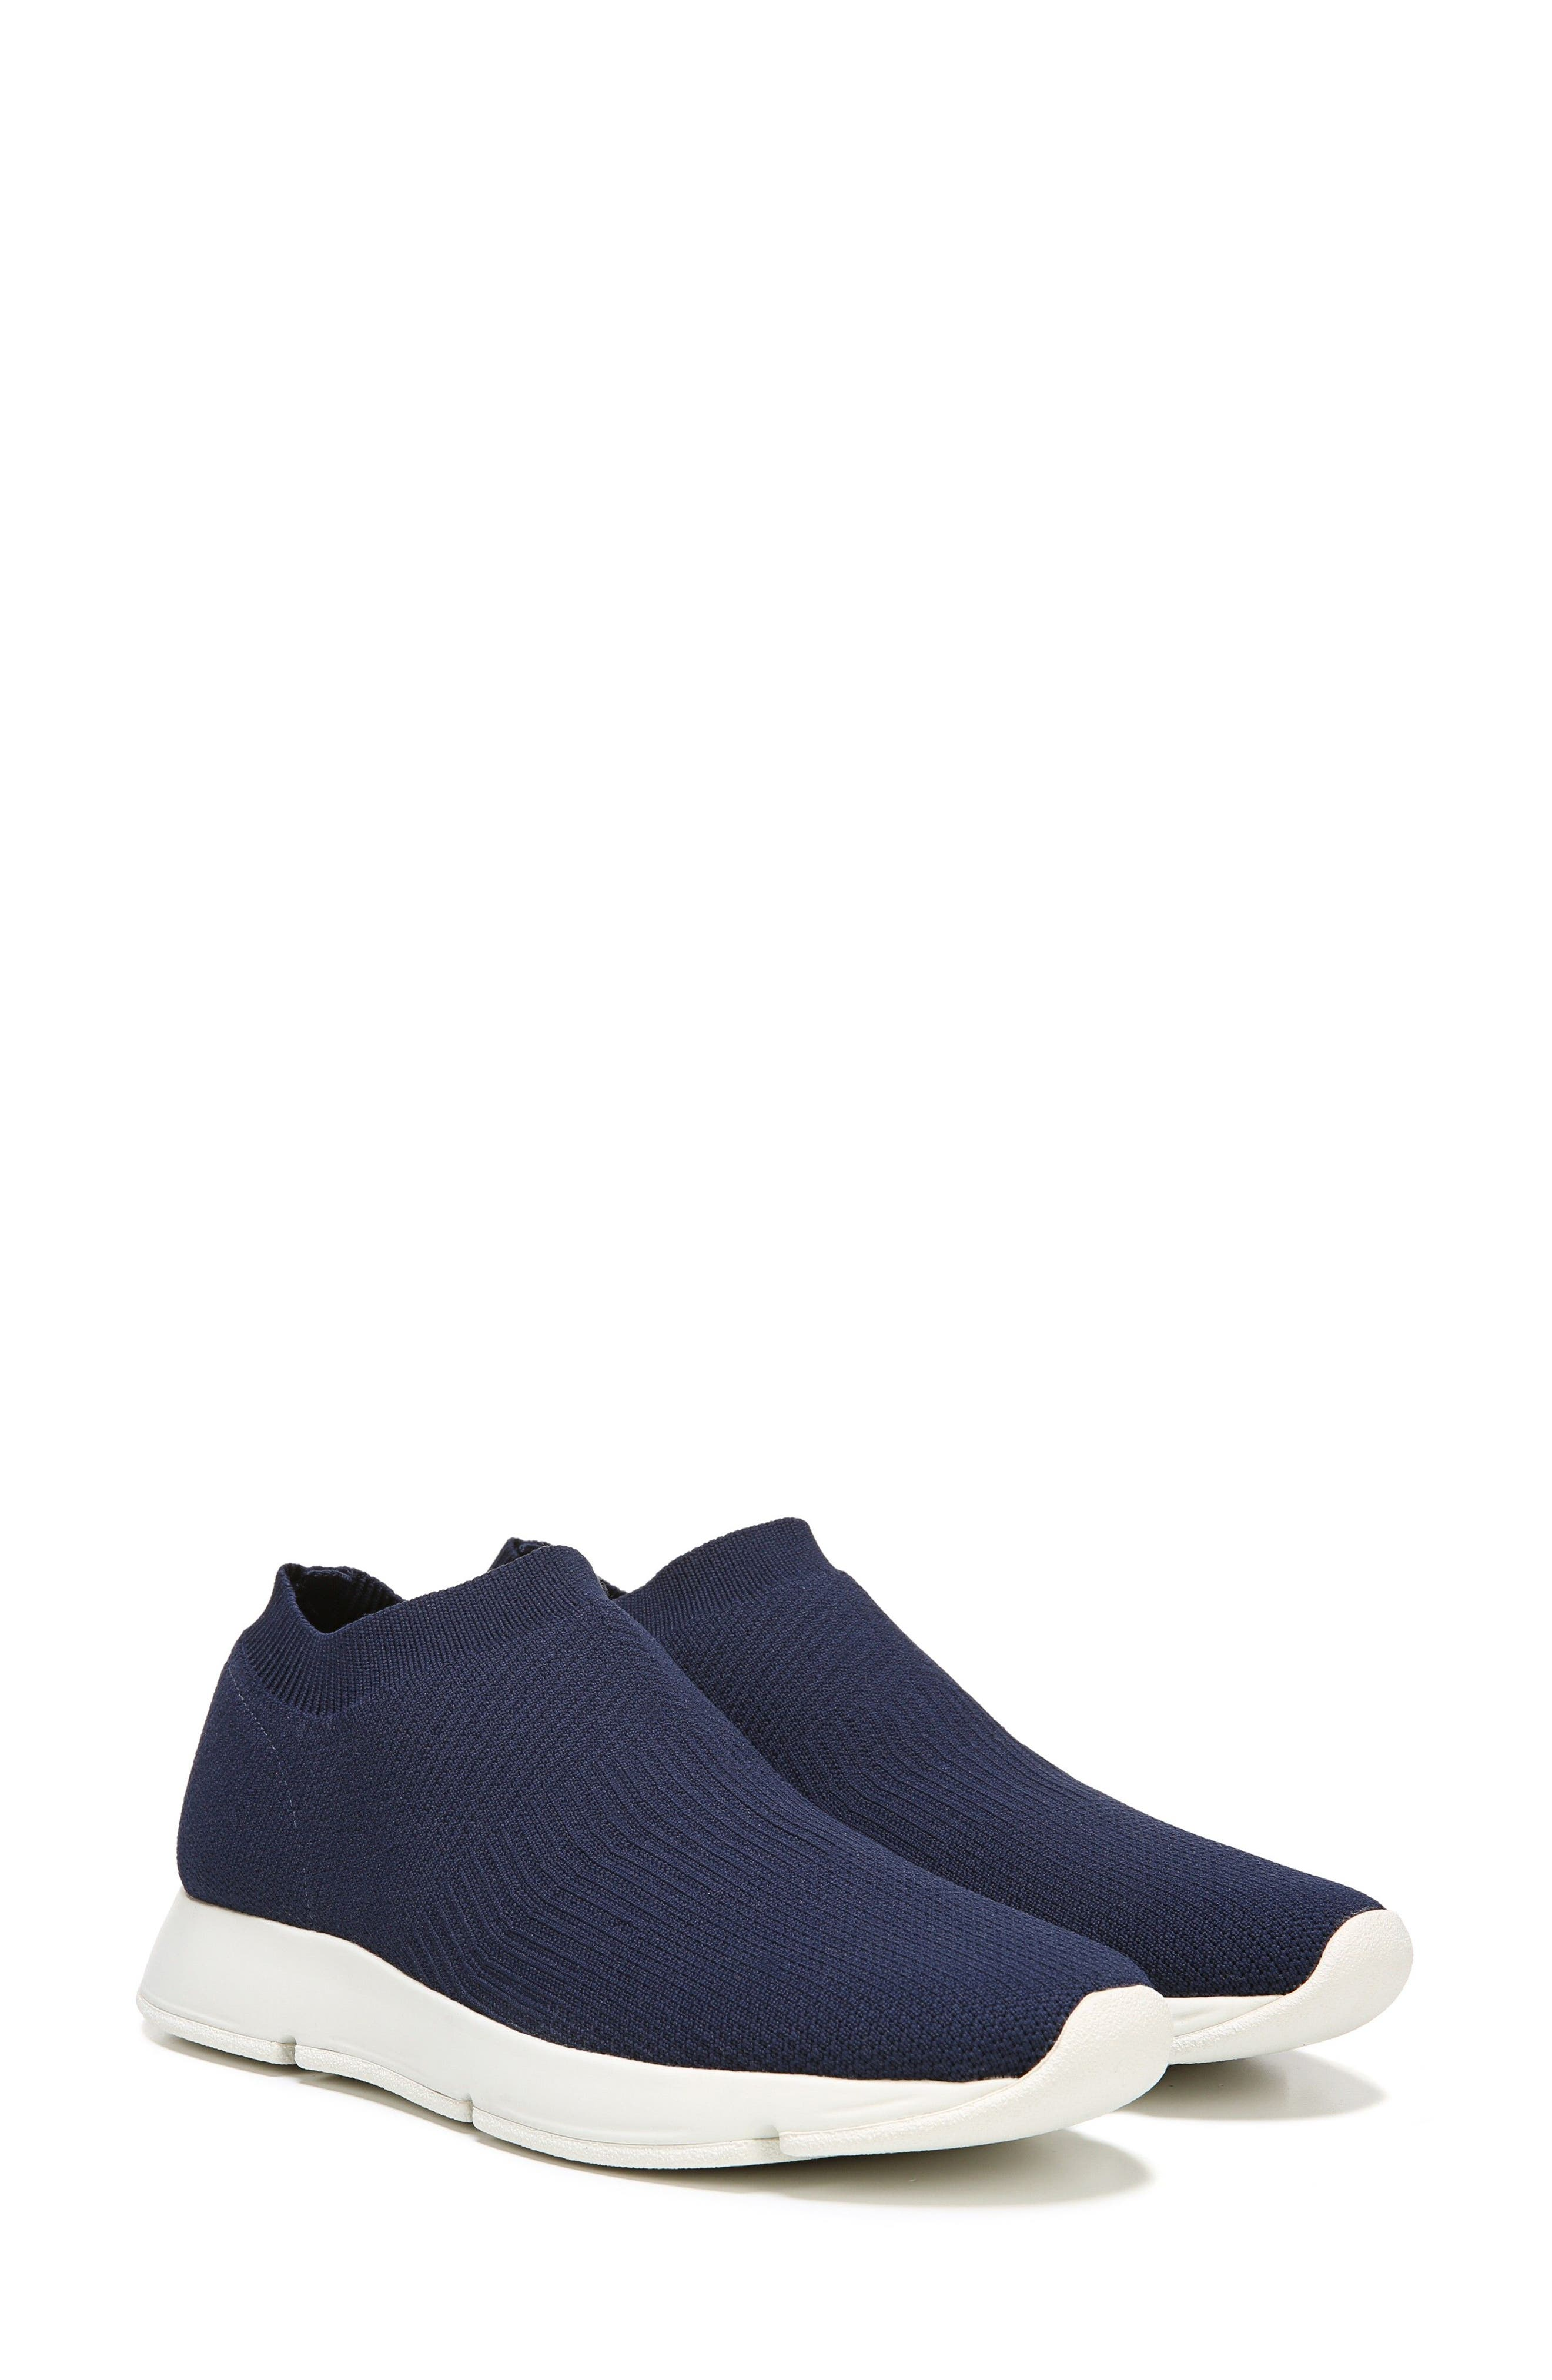 Theroux Slip-On Knit Sneaker,                             Alternate thumbnail 23, color,